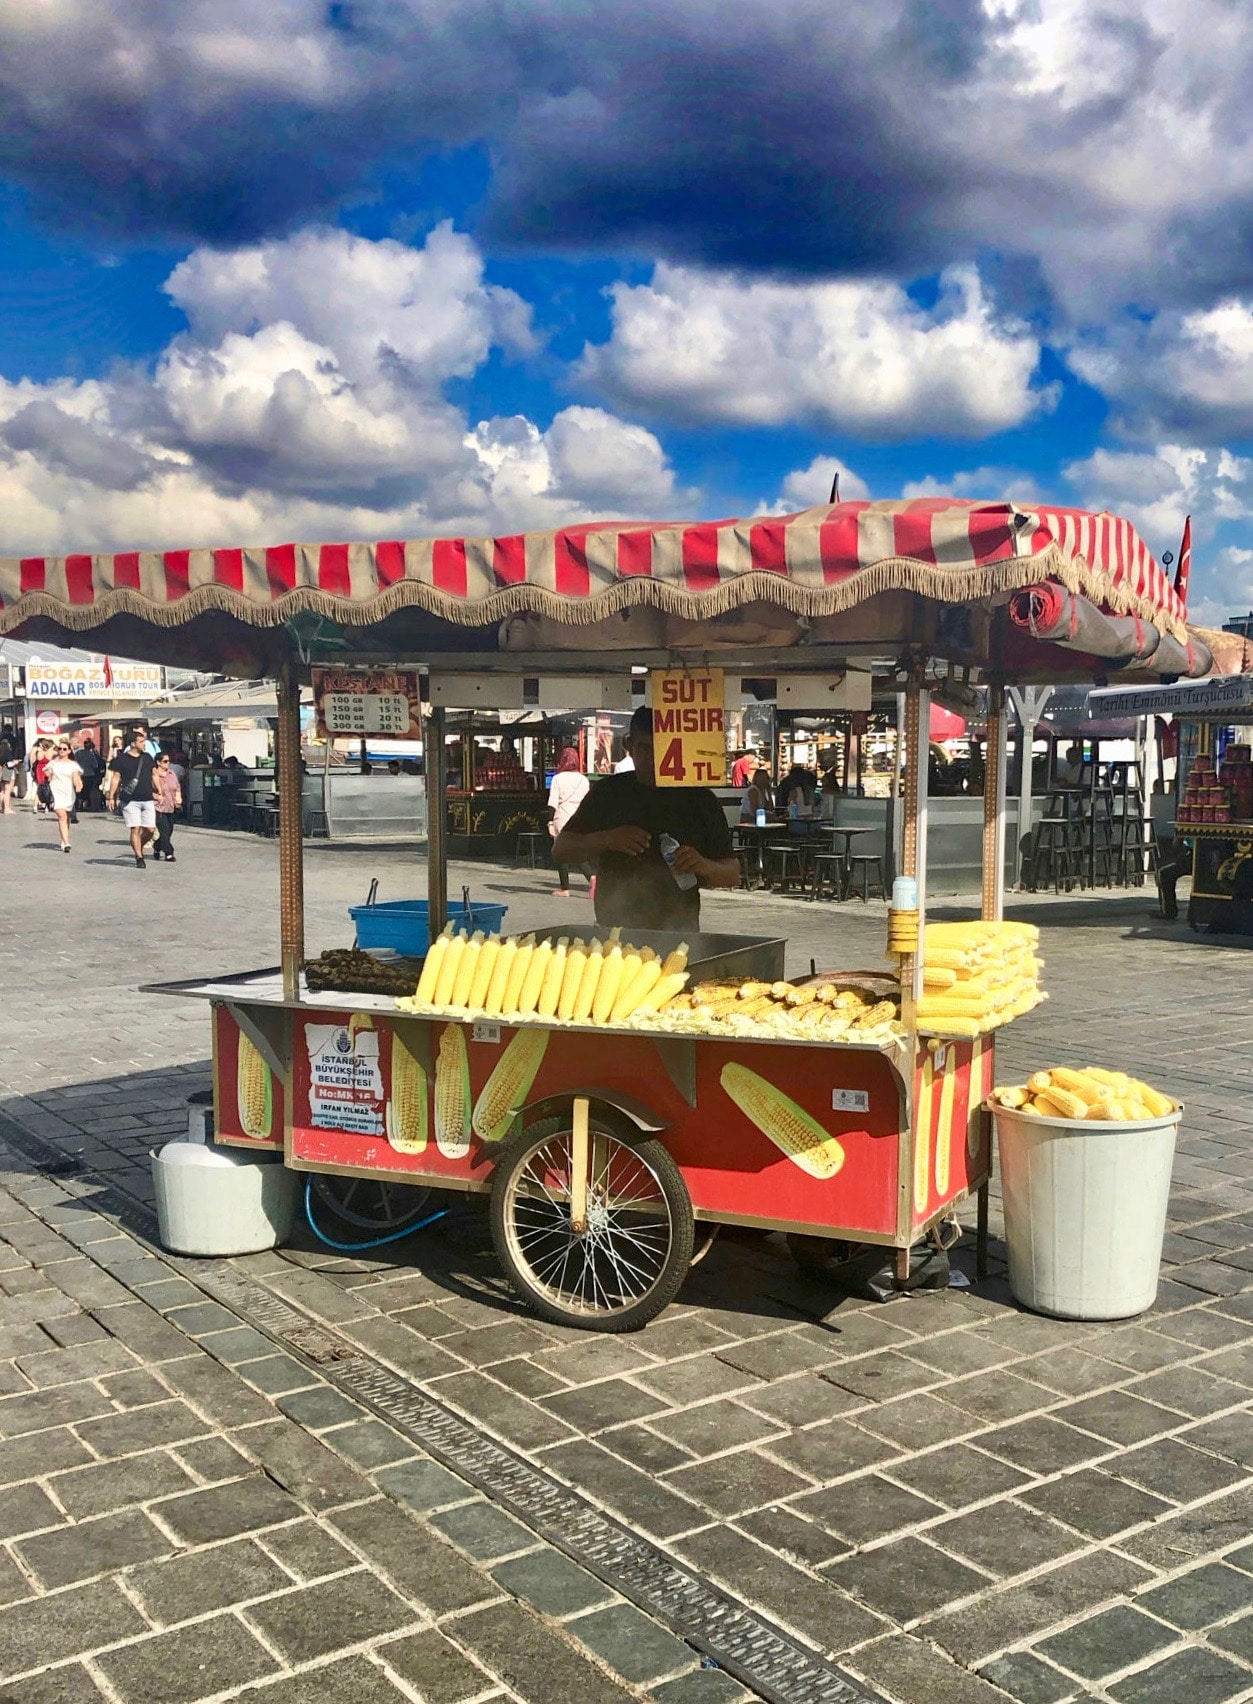 Turkish food in Istanbul: A corn on the cob cart in Istanbul, selling bright yellow corn. A blue sky with thick clouds dictates the background.